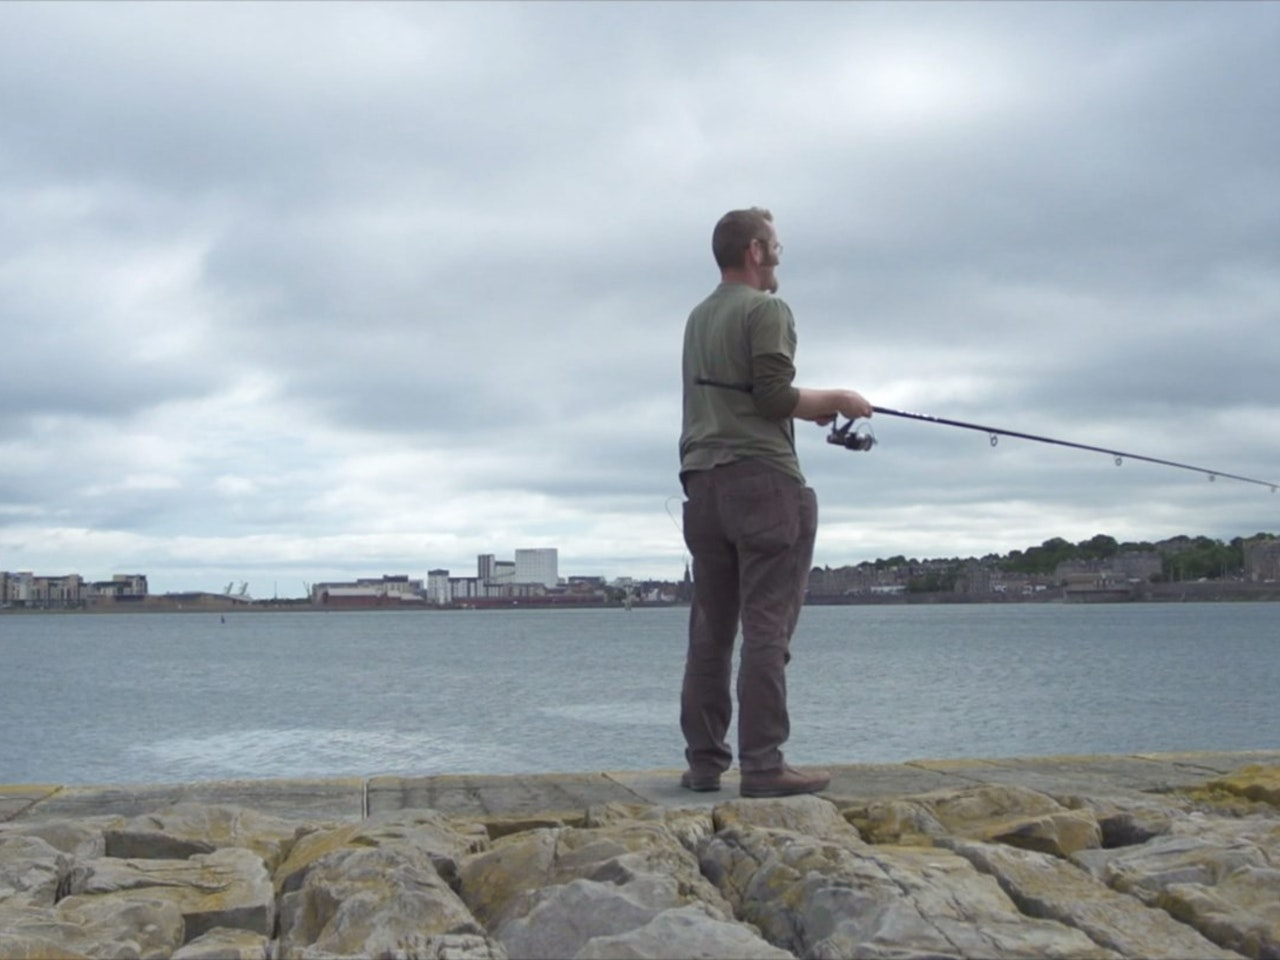 New Work: Camera Op - The Edinburgh Shoreline Project